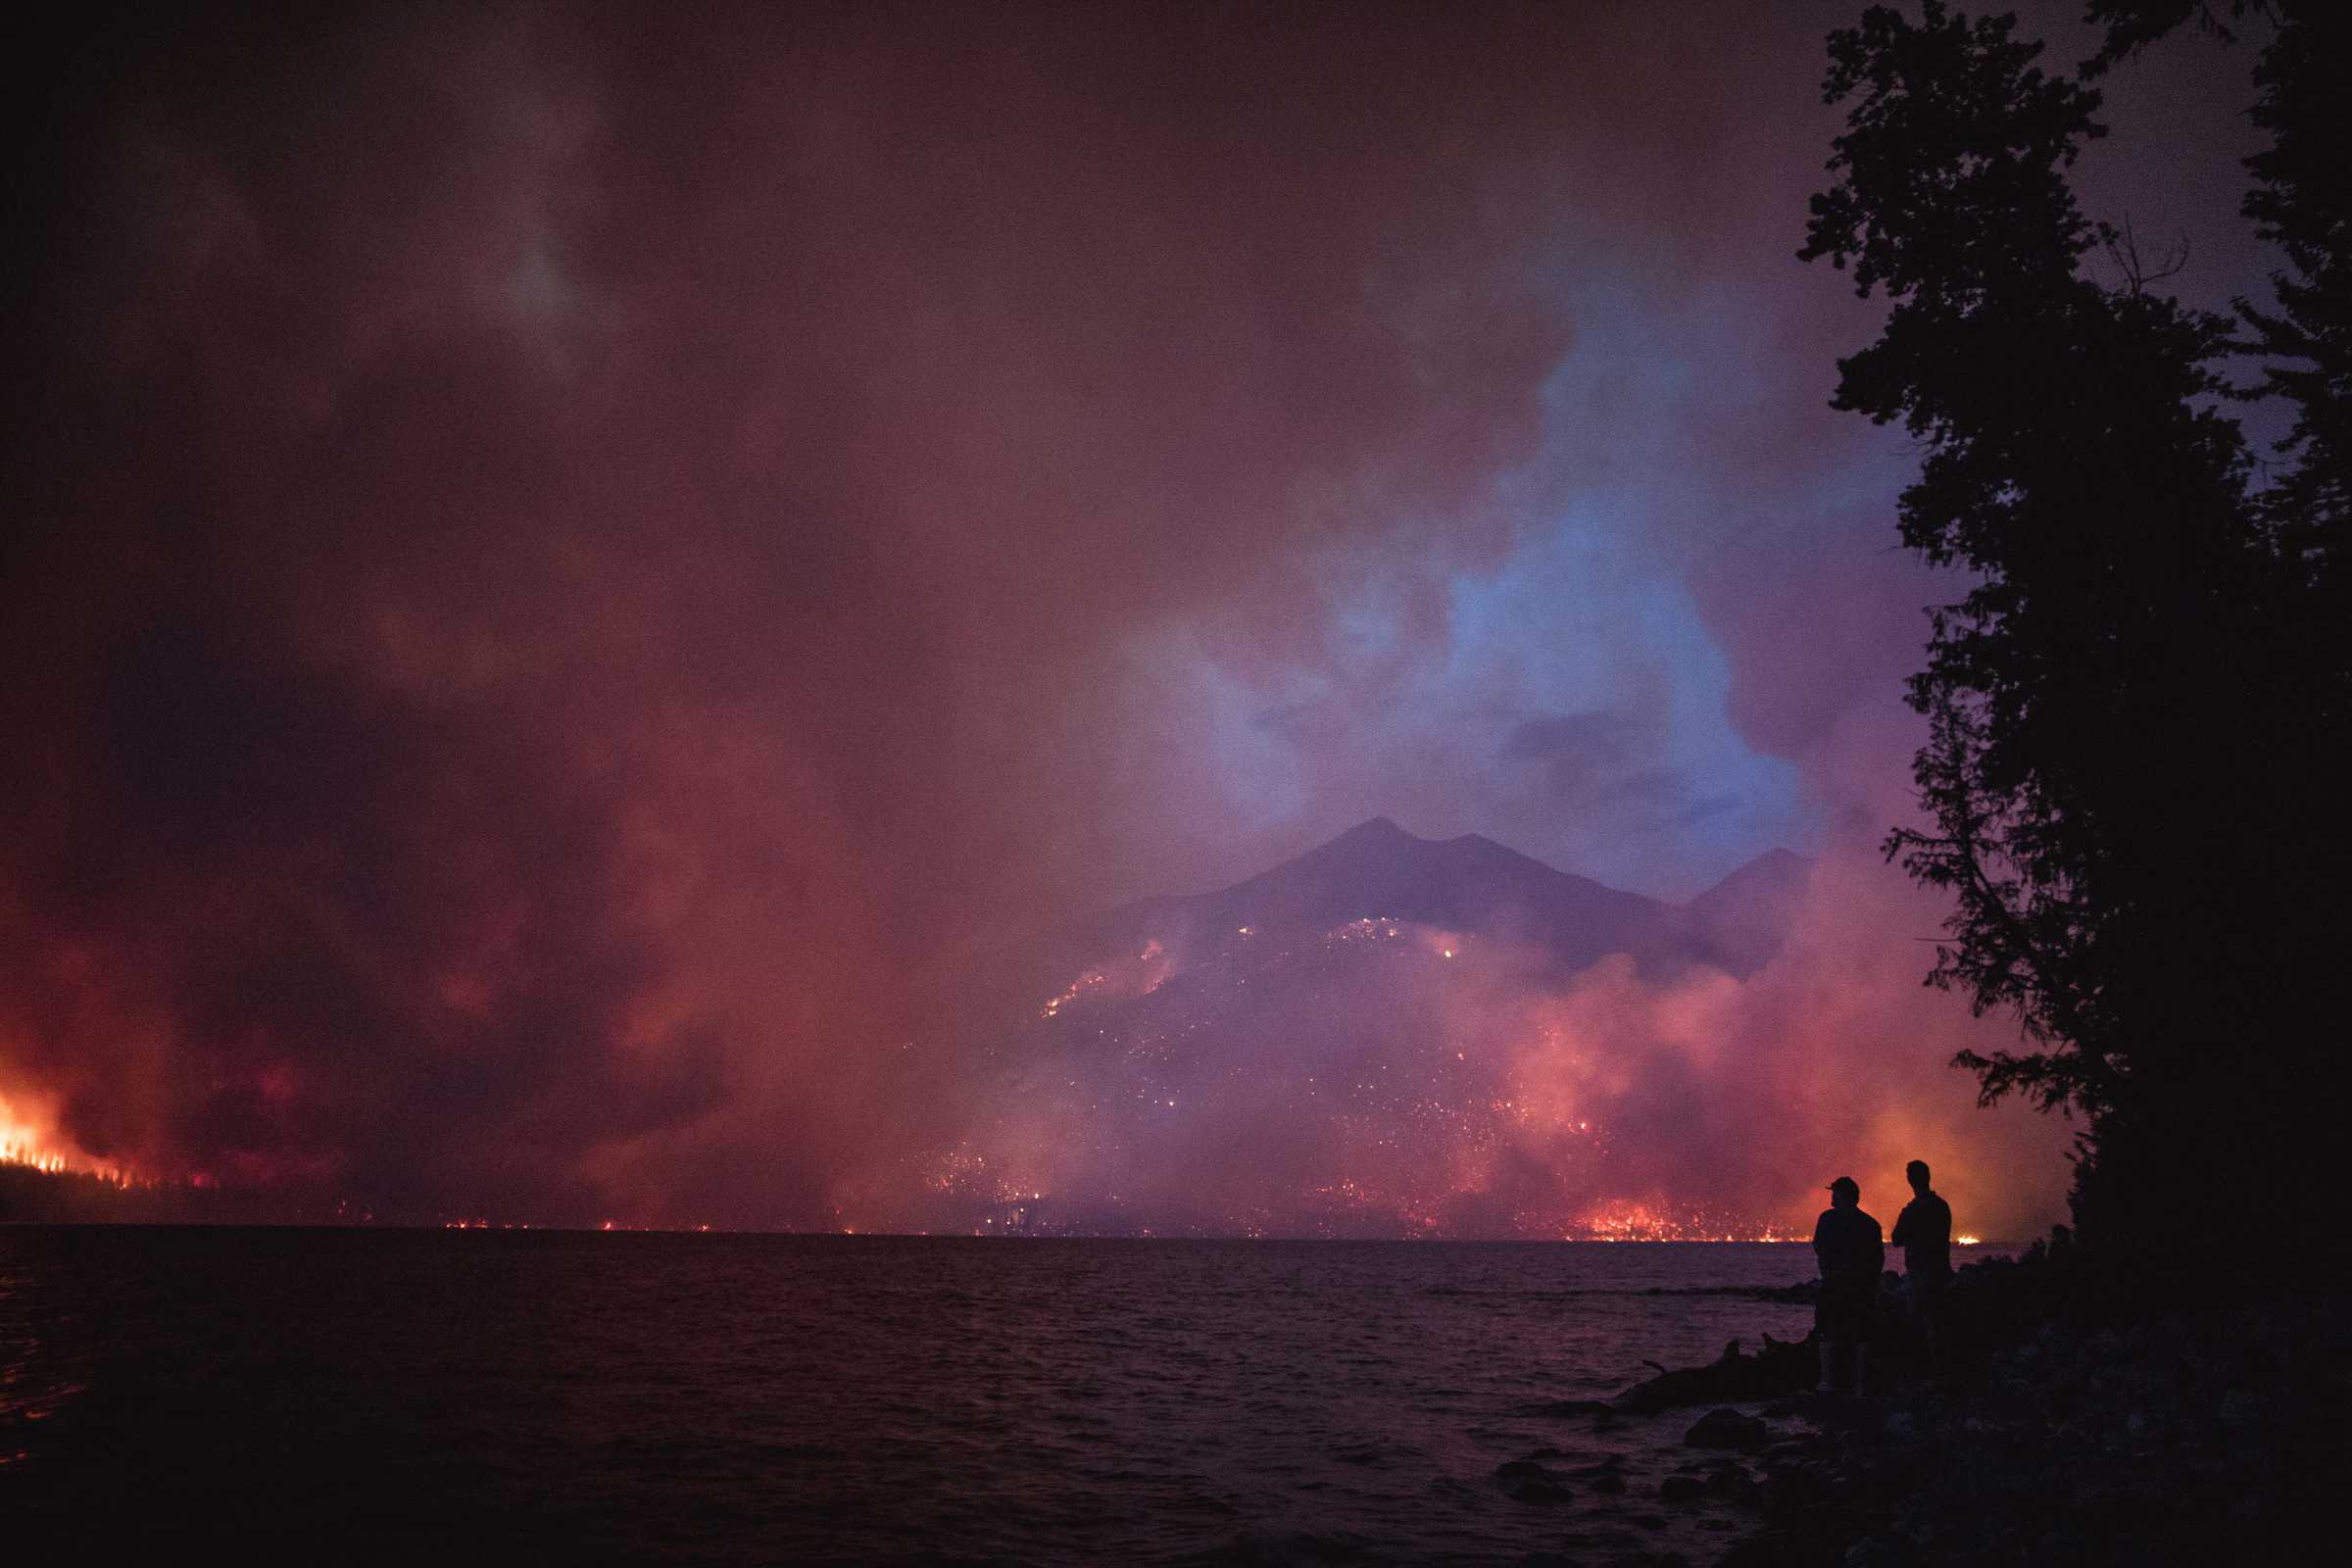 looking across a lake to massive smoke plumes obscuring mountain ranges, taken around dusk